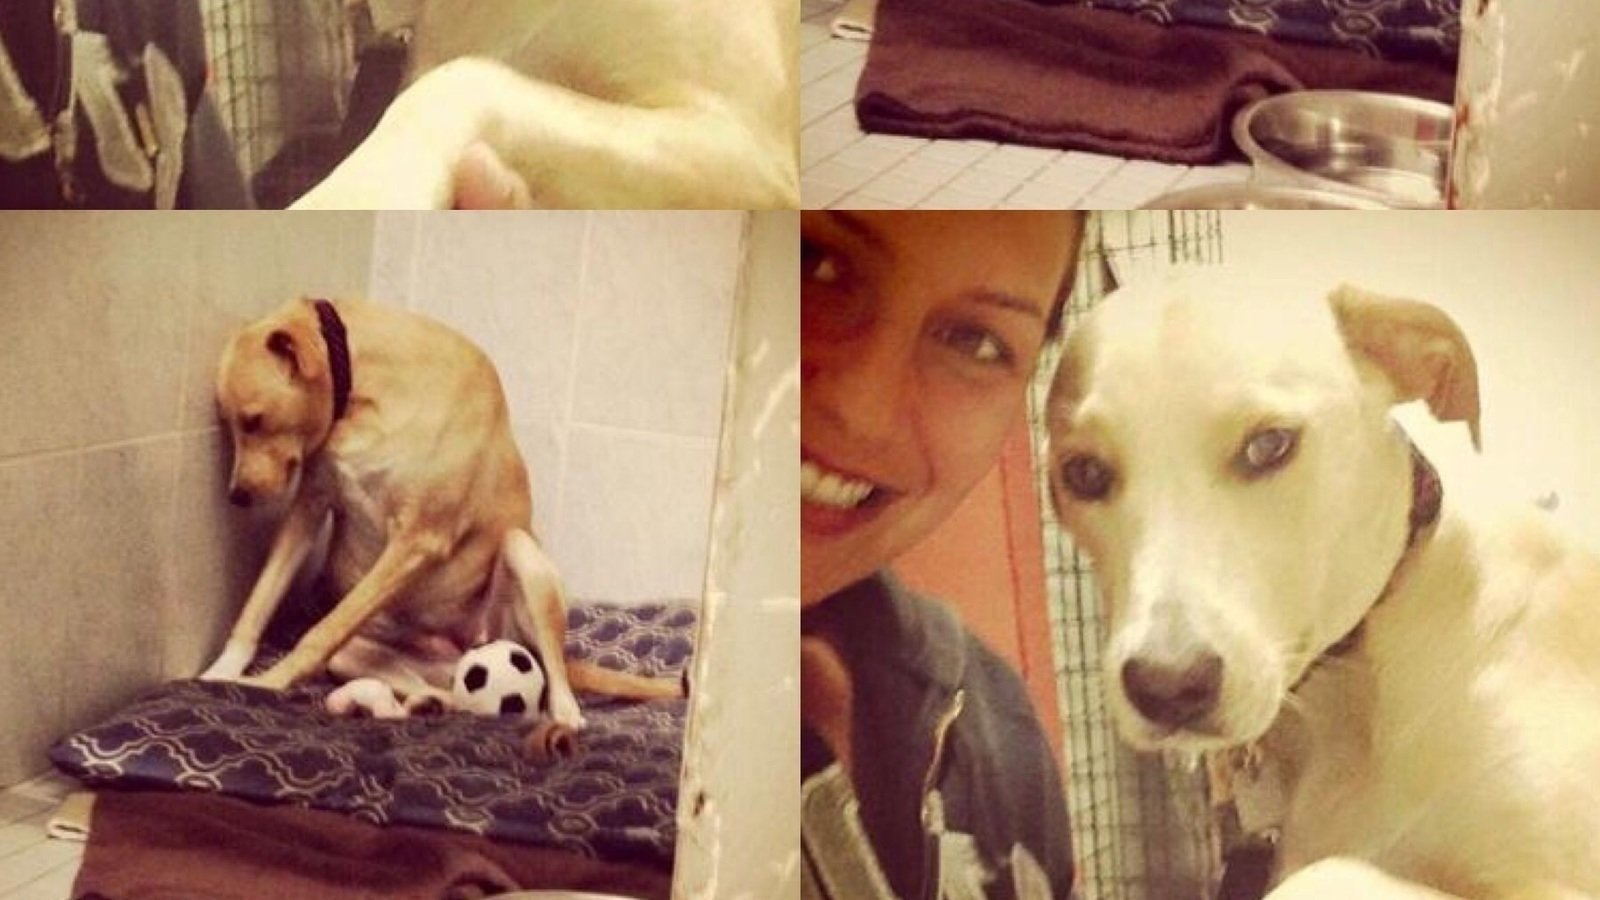 petition update this dog is so heartbroken and sad she